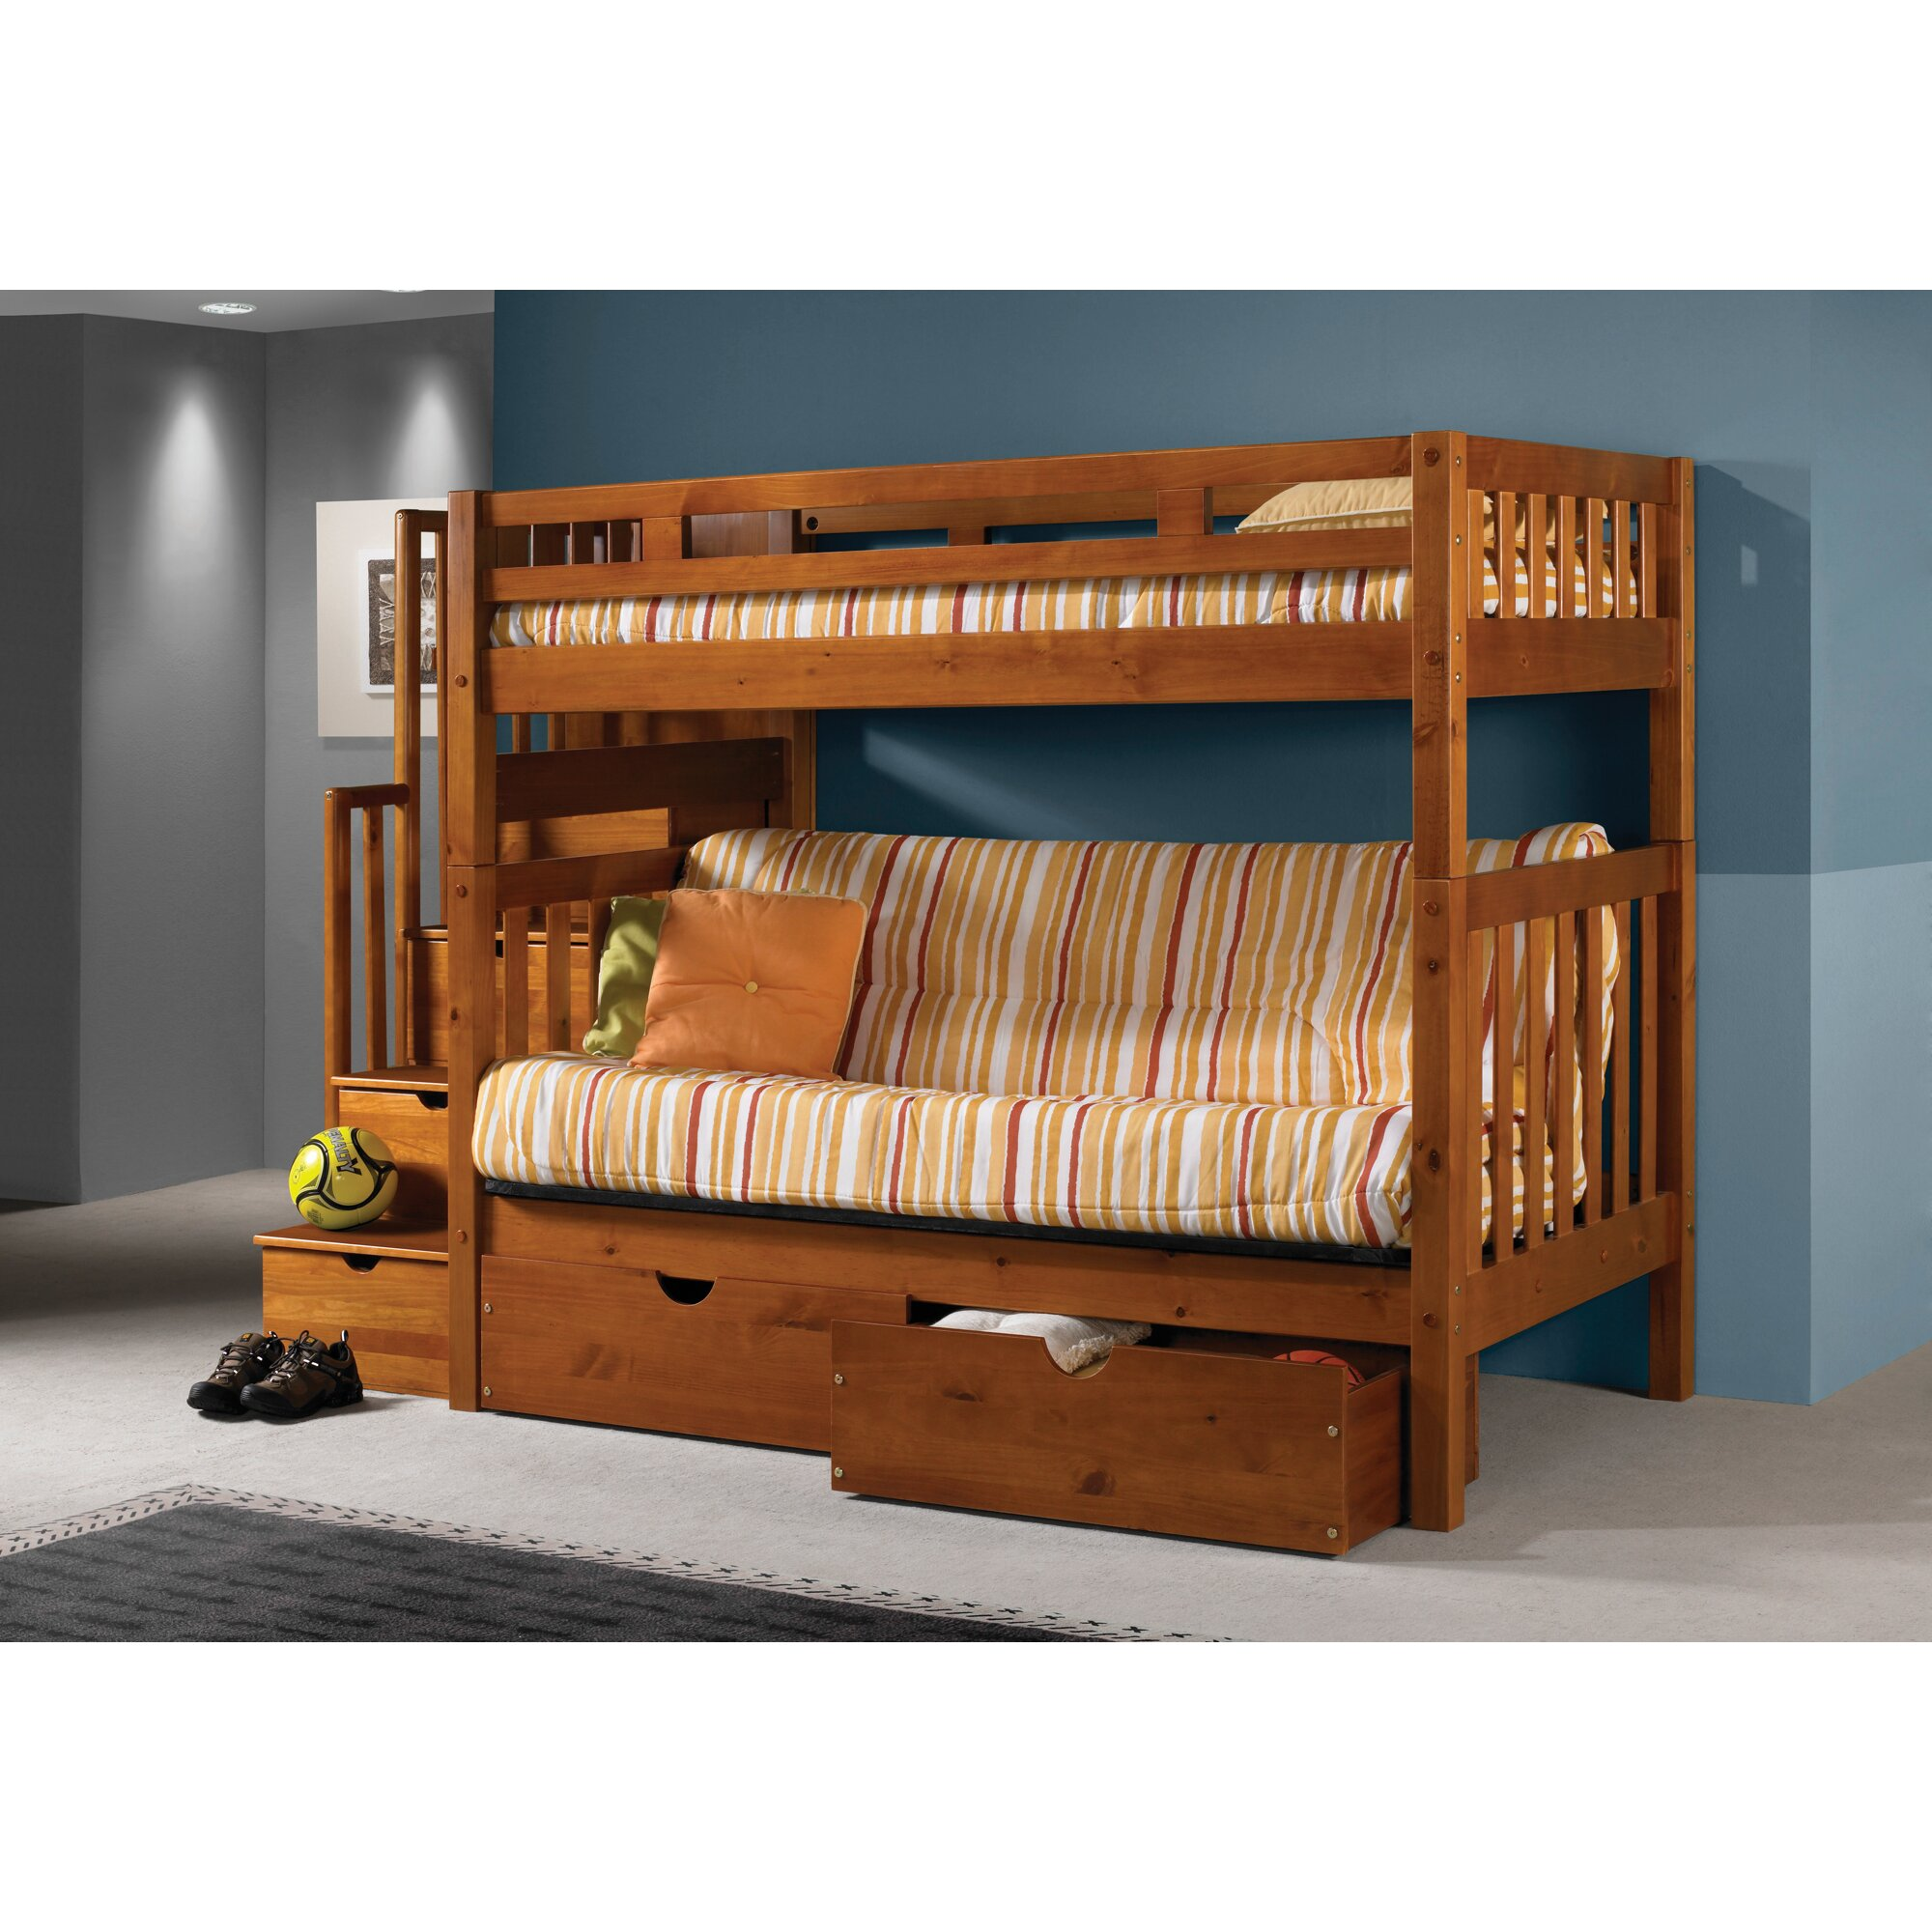 Bed frames with storage drawers - Stairway Loft Bunk Bed With Storage Drawers